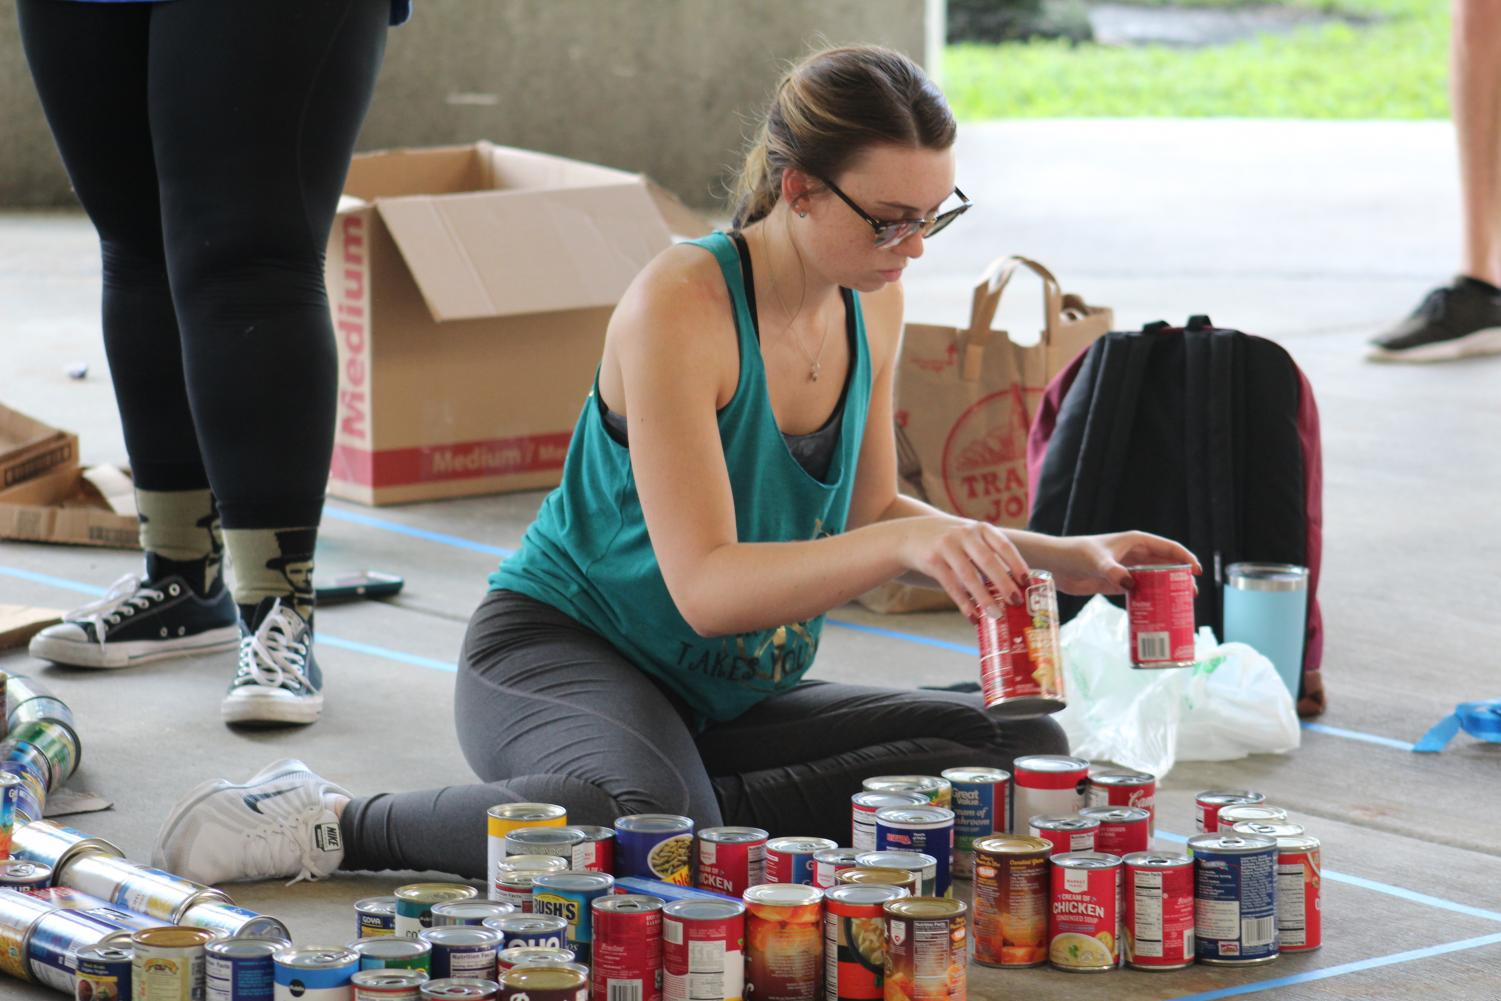 The canned food was later donated to Boca Helping Hands and FAU's Beyond Food program, which are charities that help feed people in need. Photo by Emma Saunders